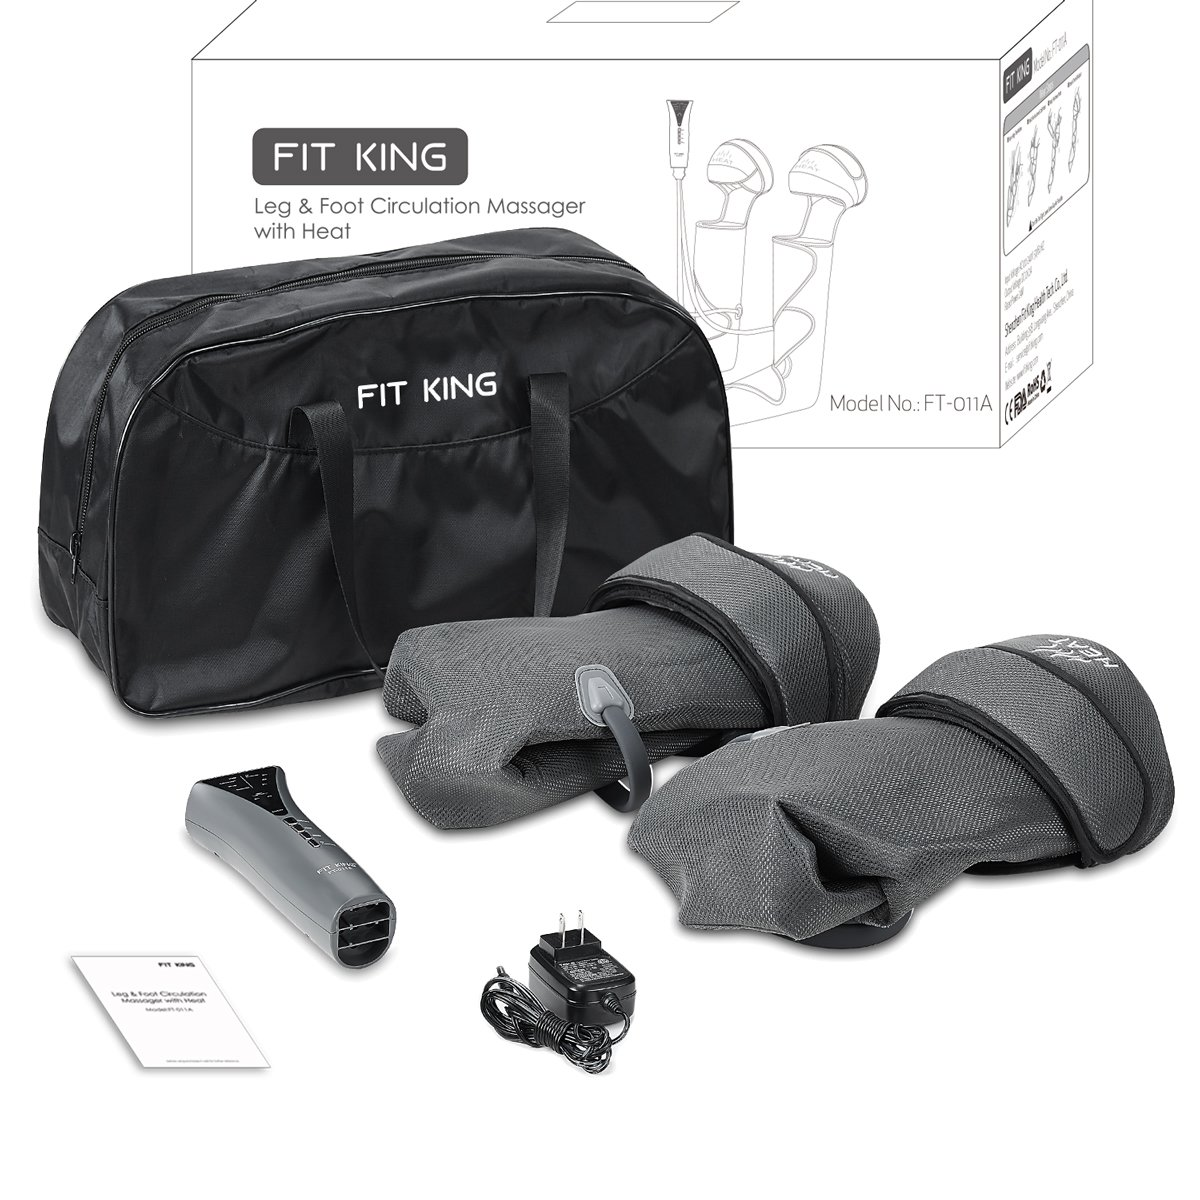 FIT KING Leg & Foot Air Massager and Knee Warmer for Foot Calf and Knee Circulation Massage with Size Extensions and 3 Modes 3 Intensities by FIT KING (Image #7)